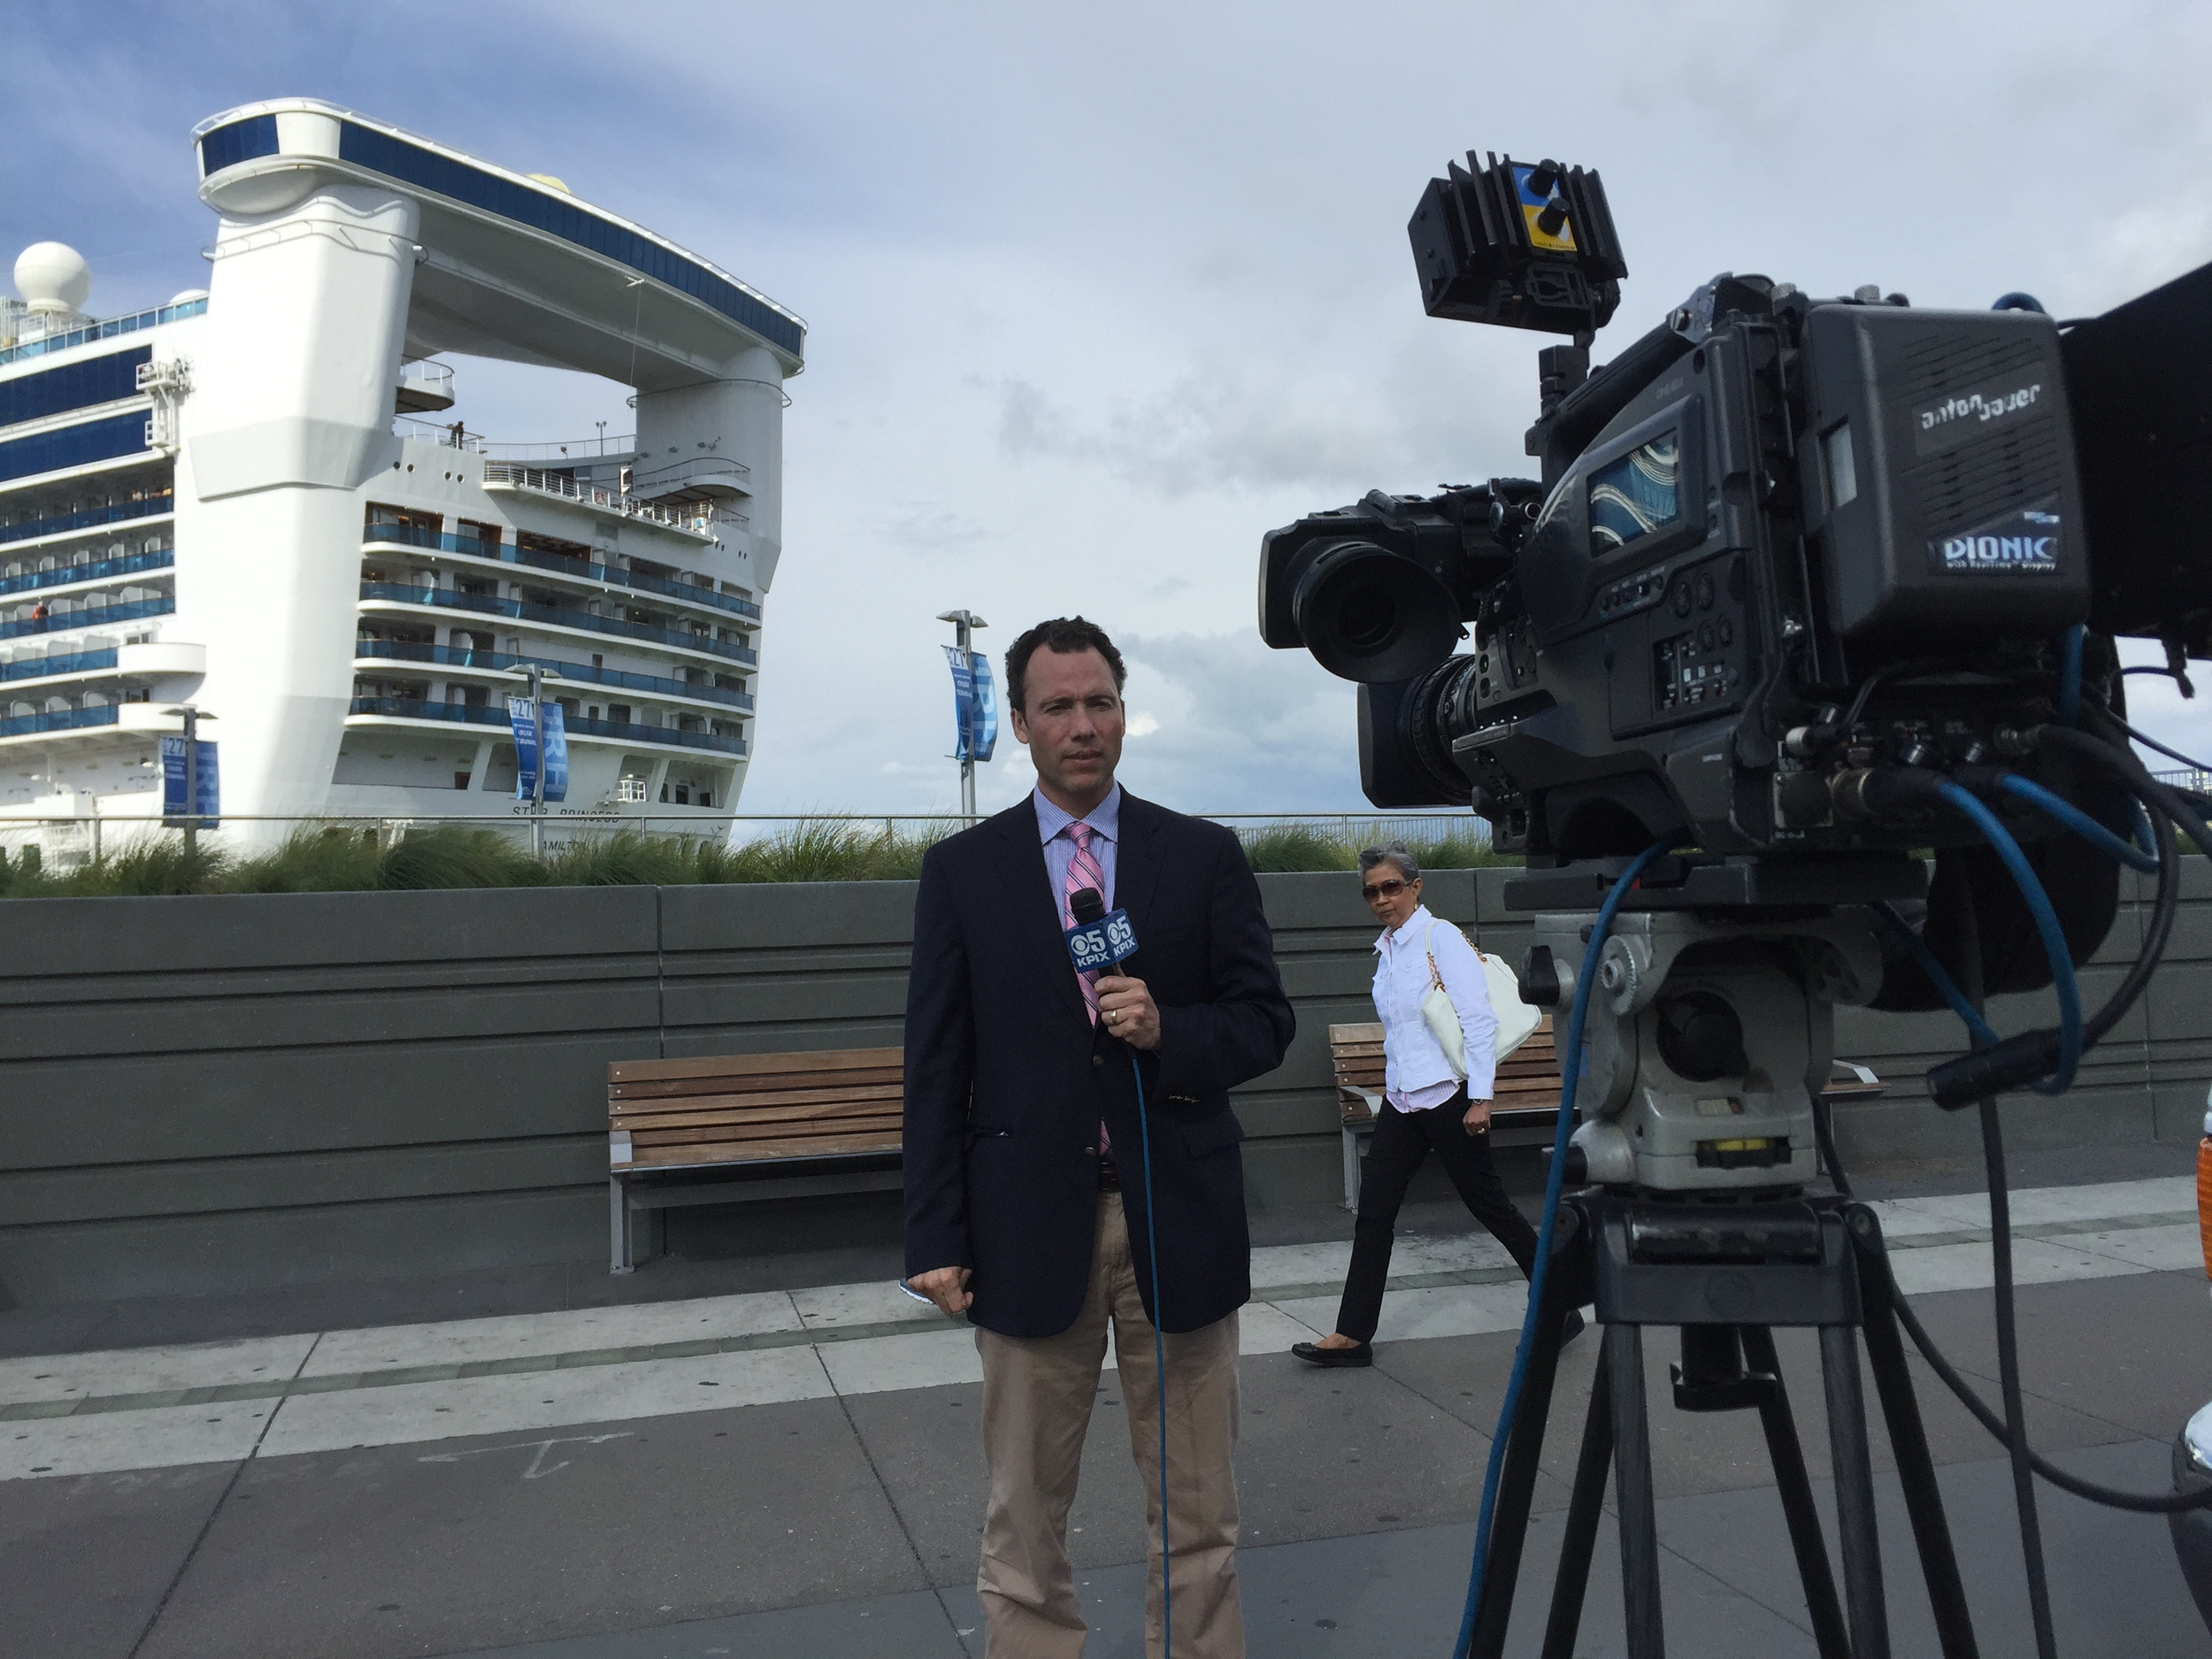 5pm live shot with the cruise ship in the background.